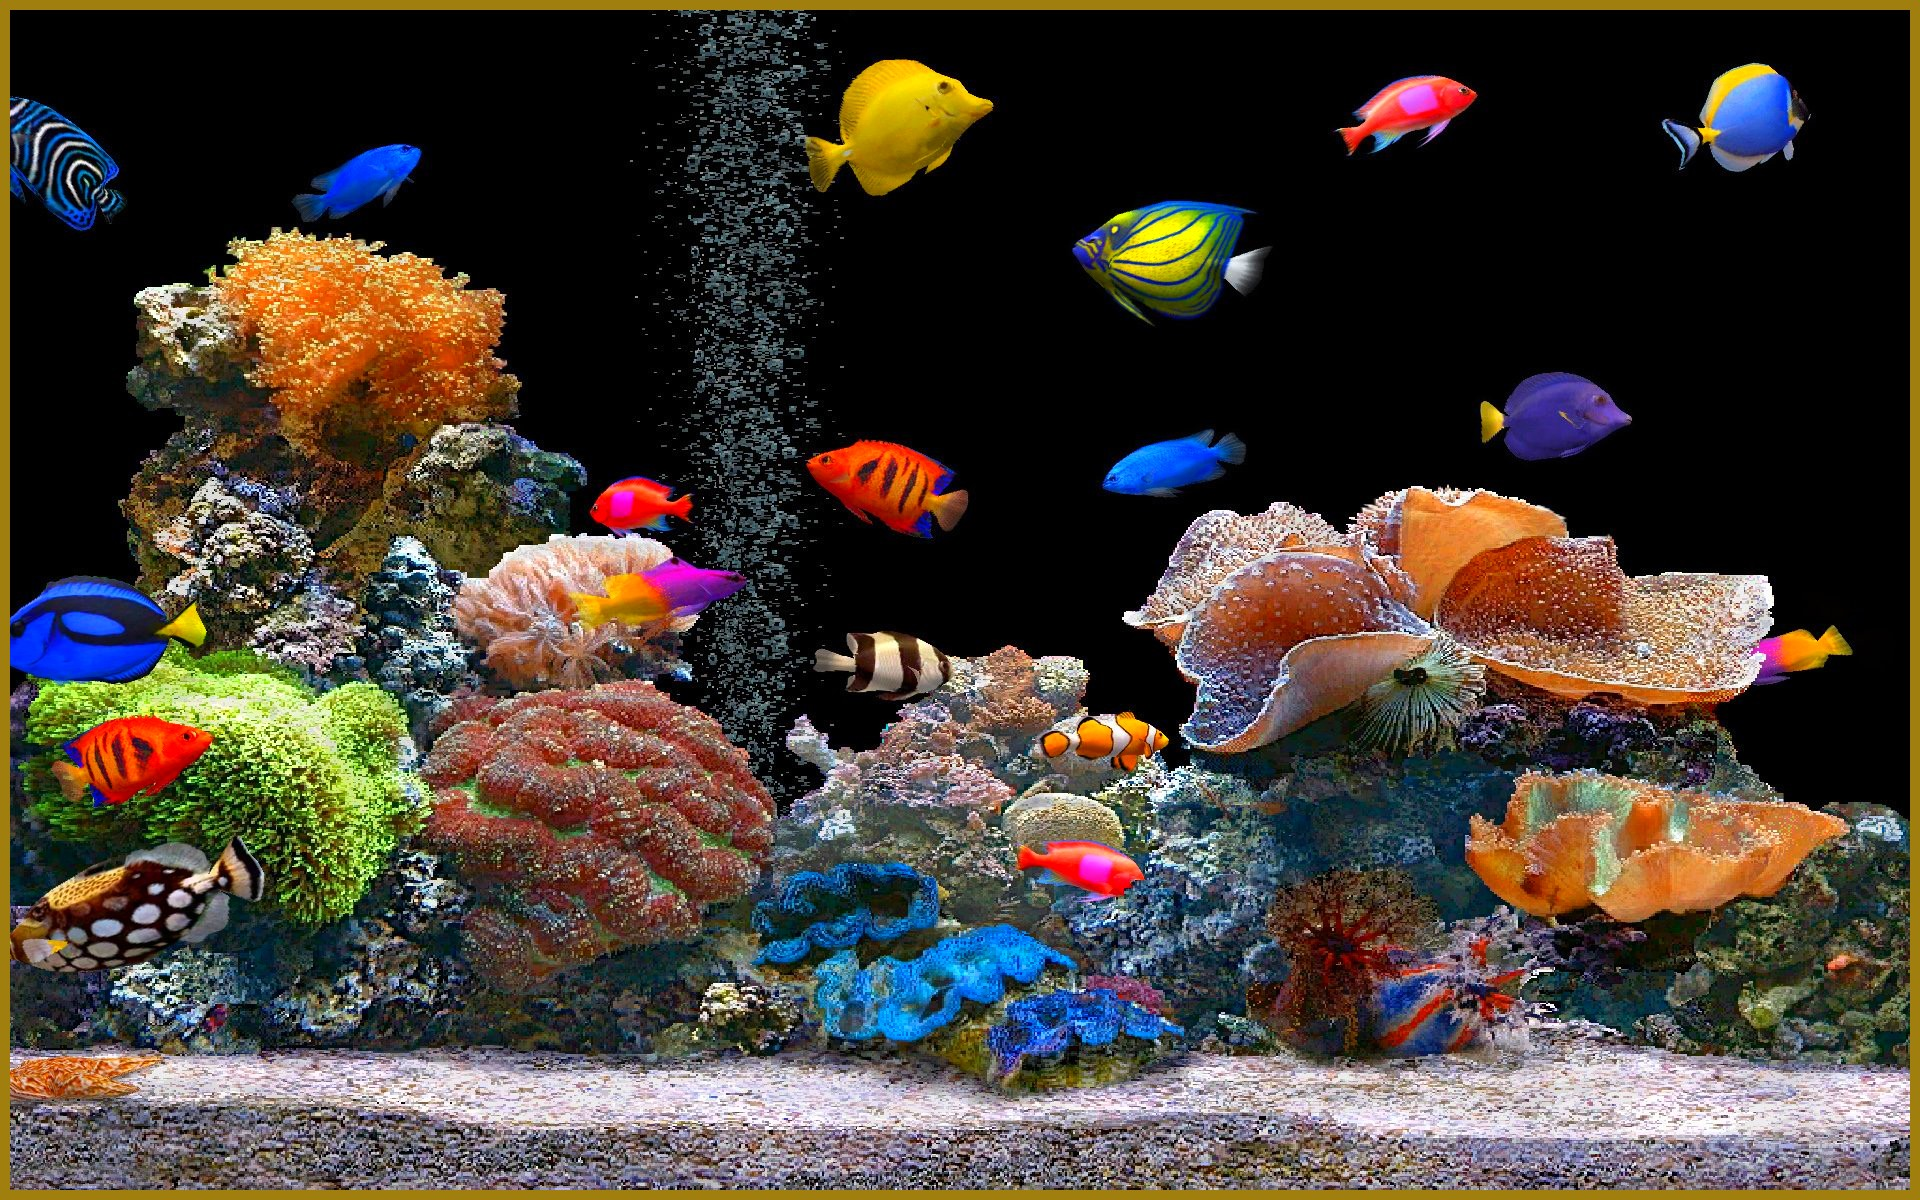 Aquarium Colorful Fish 872.38 Kb